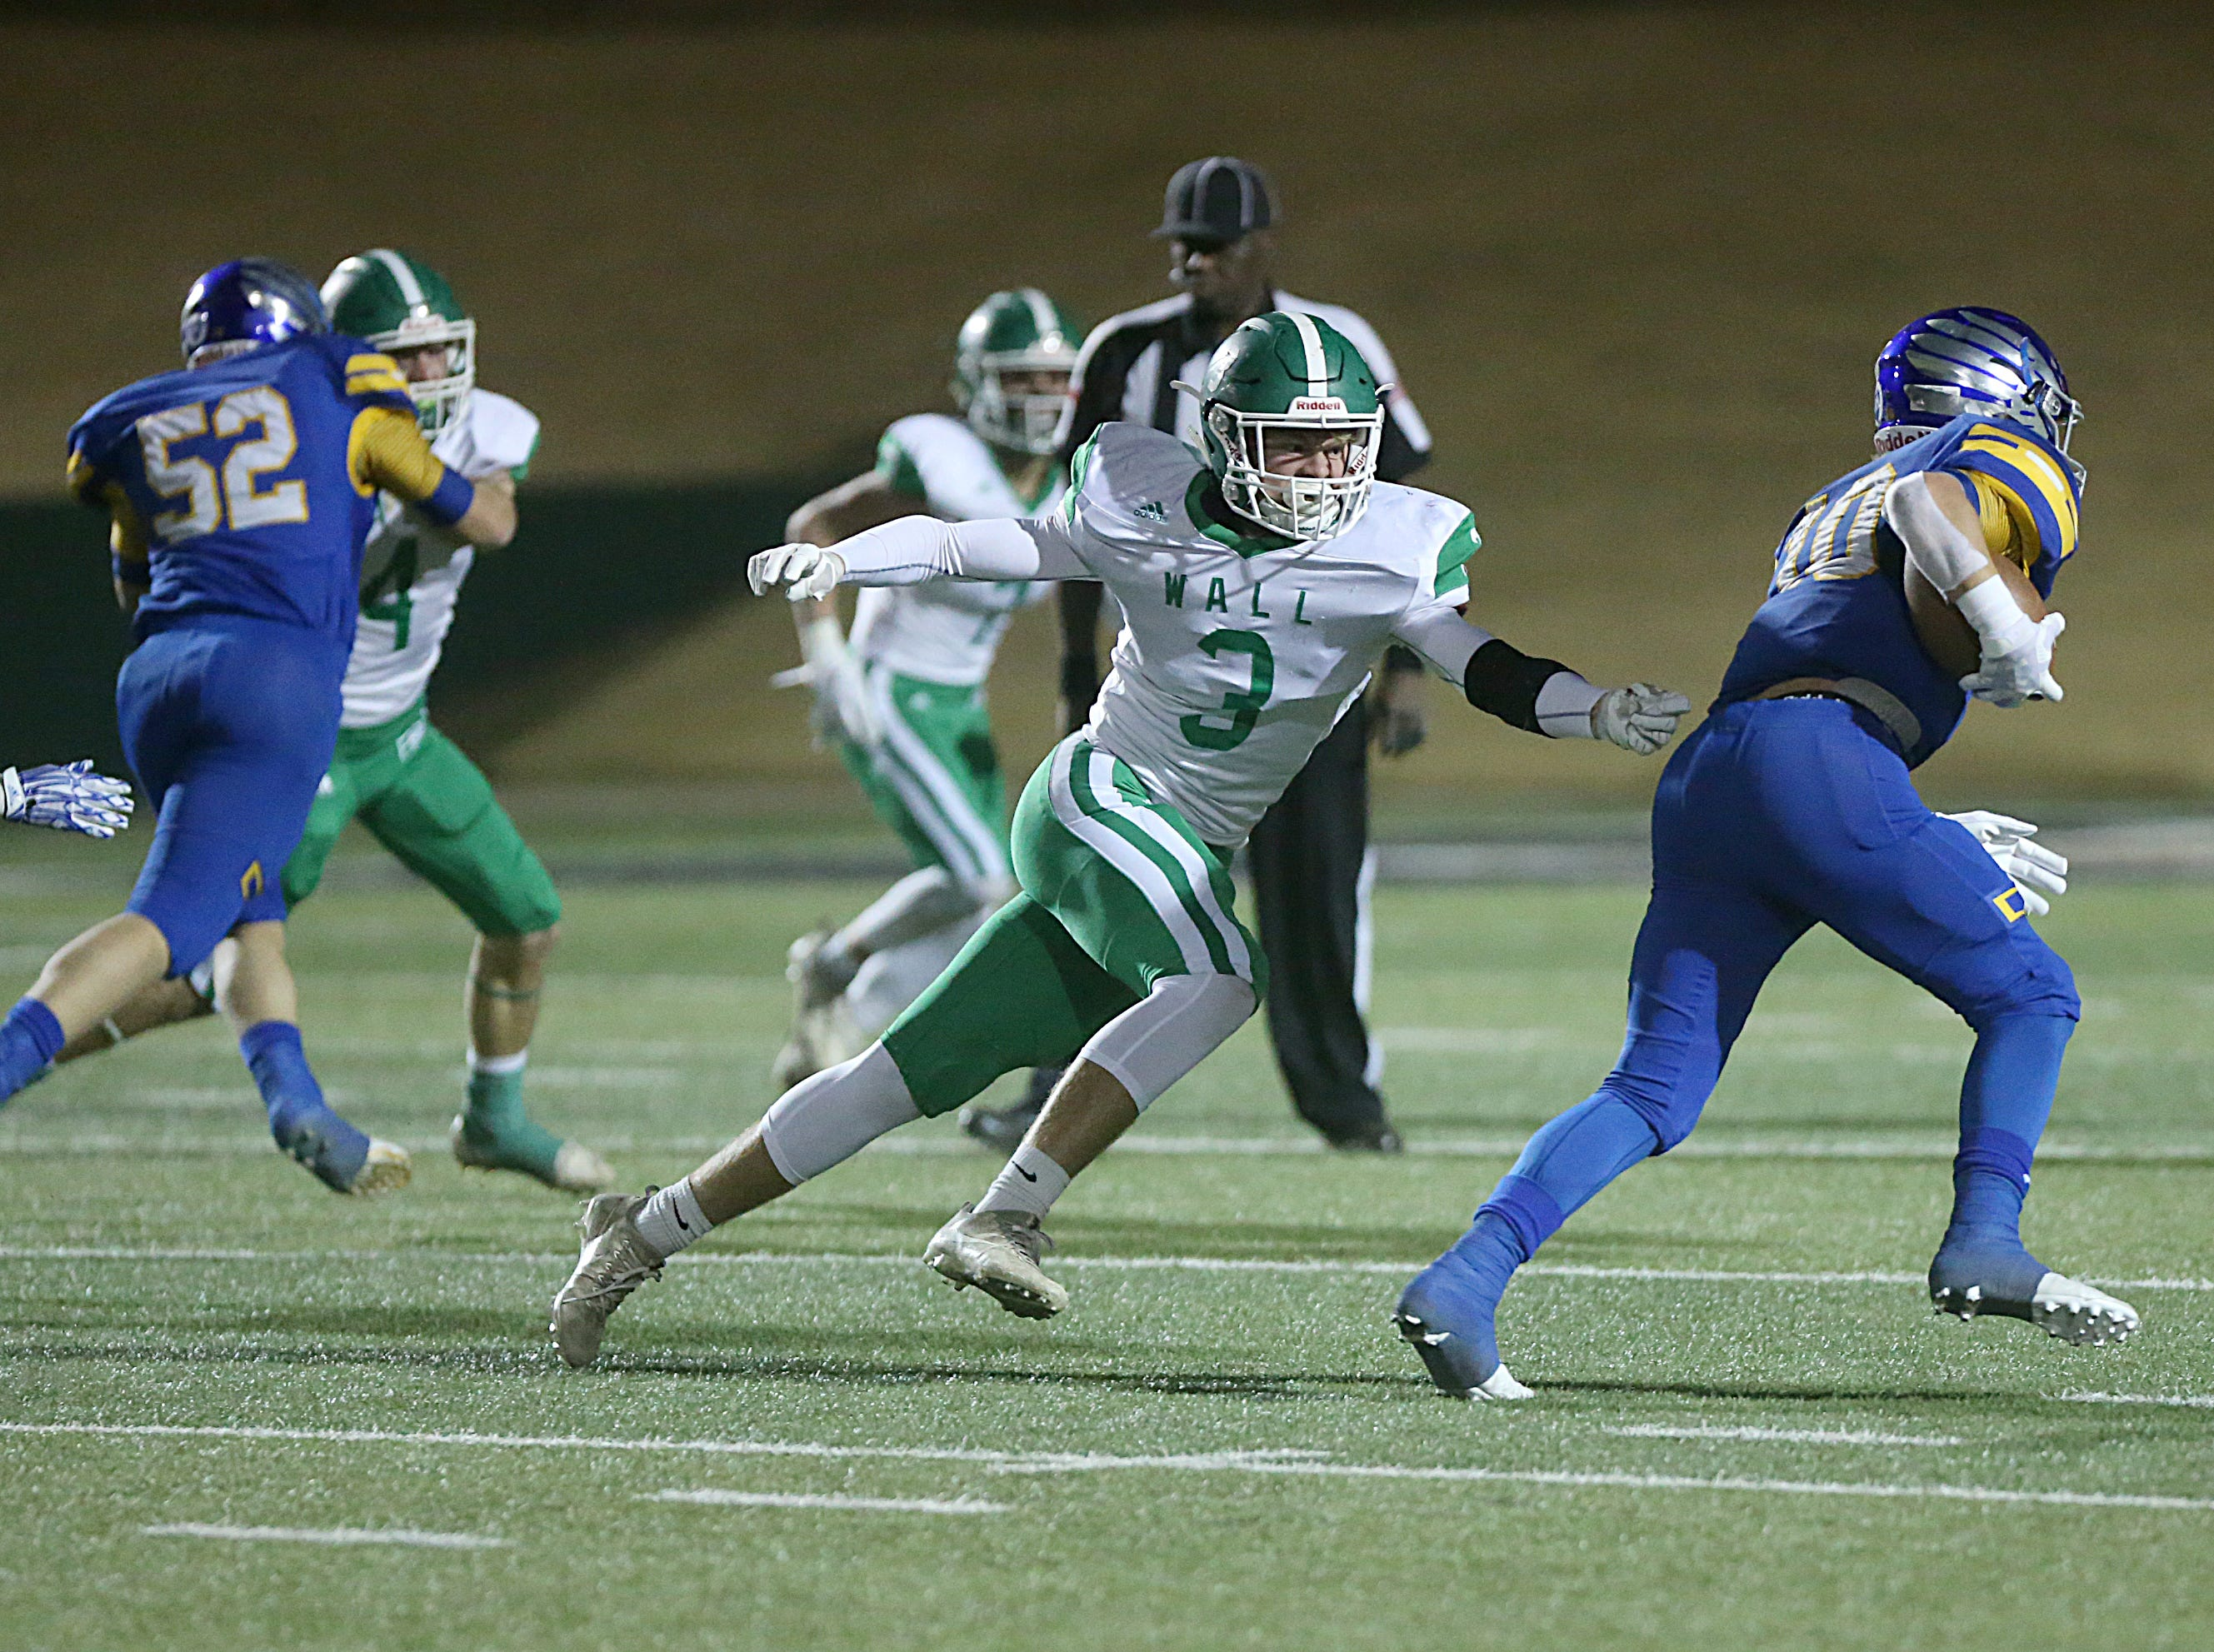 Wall's Joe Walker (#3) chases down Brock's Toby Morrison (#10) Friday, Nov. 30, 2018, during their game at Shotwell Stadium in Abilene. Wall lost 13 to 35.